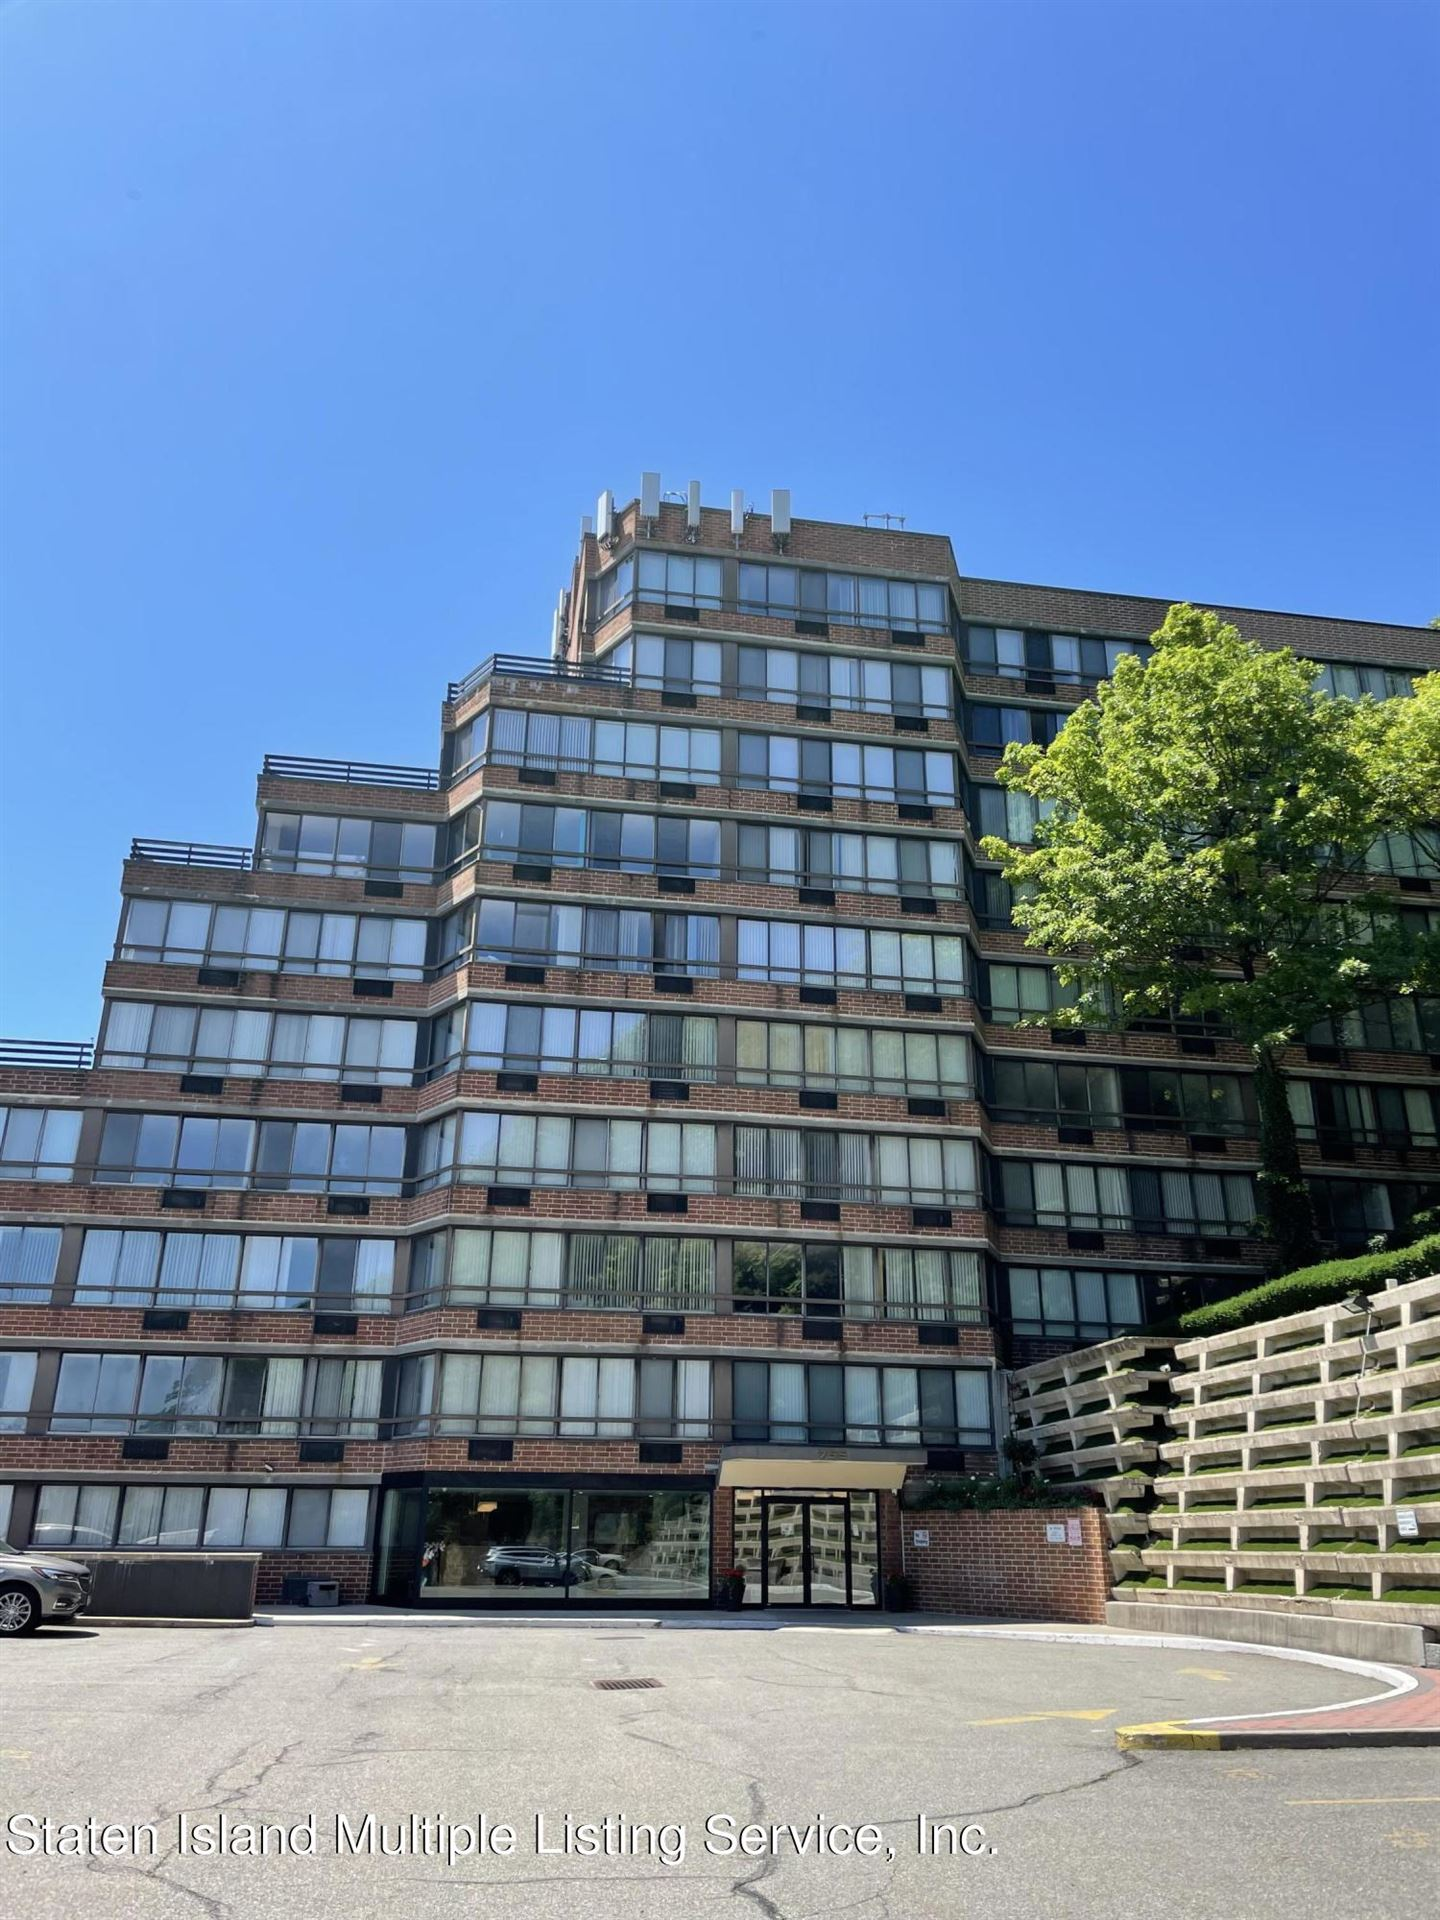 Photo for 755 Narrows 702a N Road #702a, Staten Island, NY 10304 (MLS # 1147092)